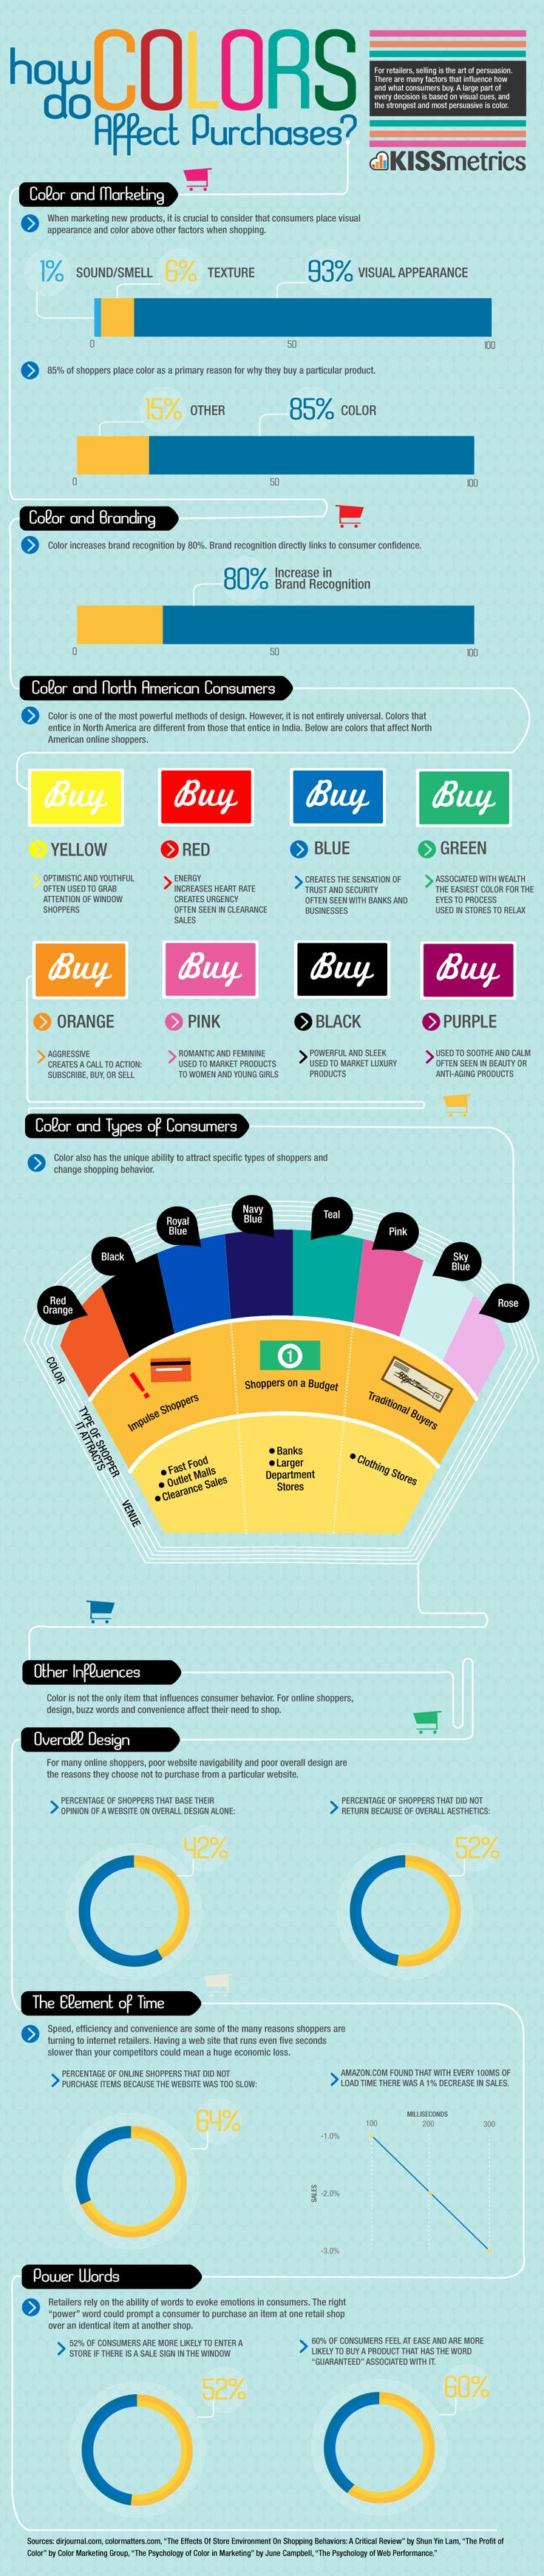 How do colours affect purchases? [Infographic] | Pitter Pattern